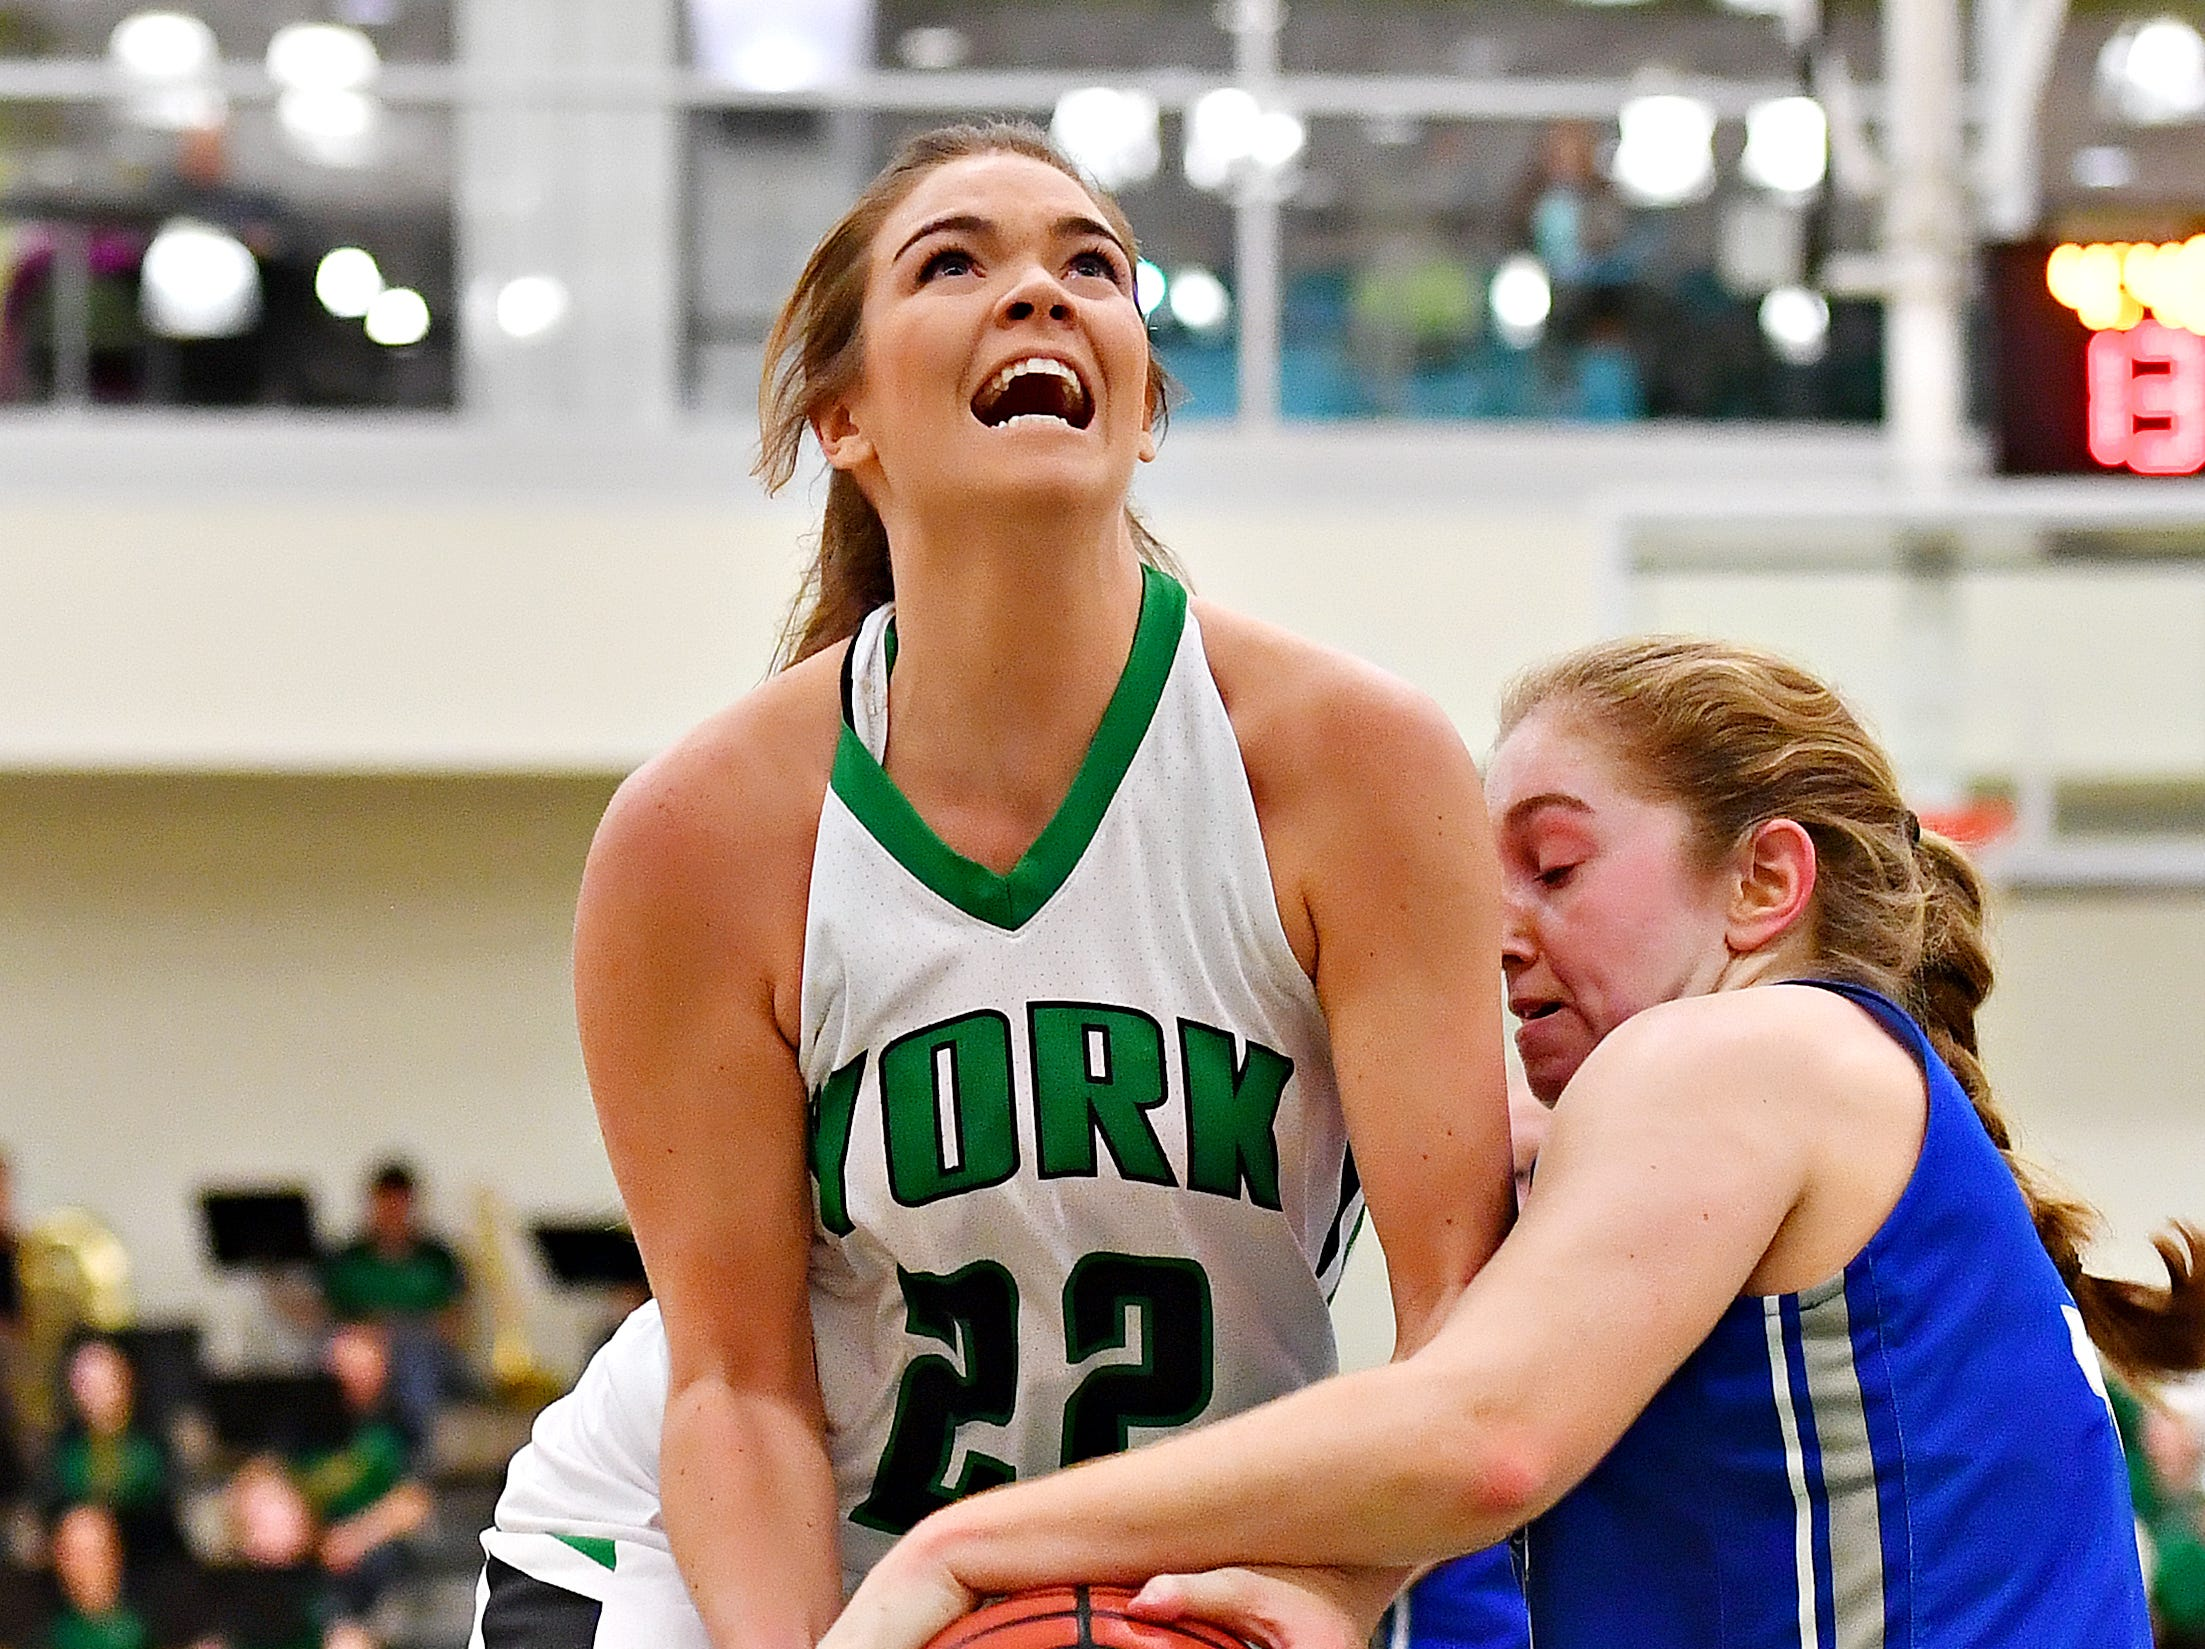 Elizabethtown's Emma Powell, right, stops York College's Katie McGowan during women's basketball action at Grumbacher Sport and Fitness Center in Spring Garden Township, Wednesday, Nov. 28, 2018. Dawn J. Sagert photo